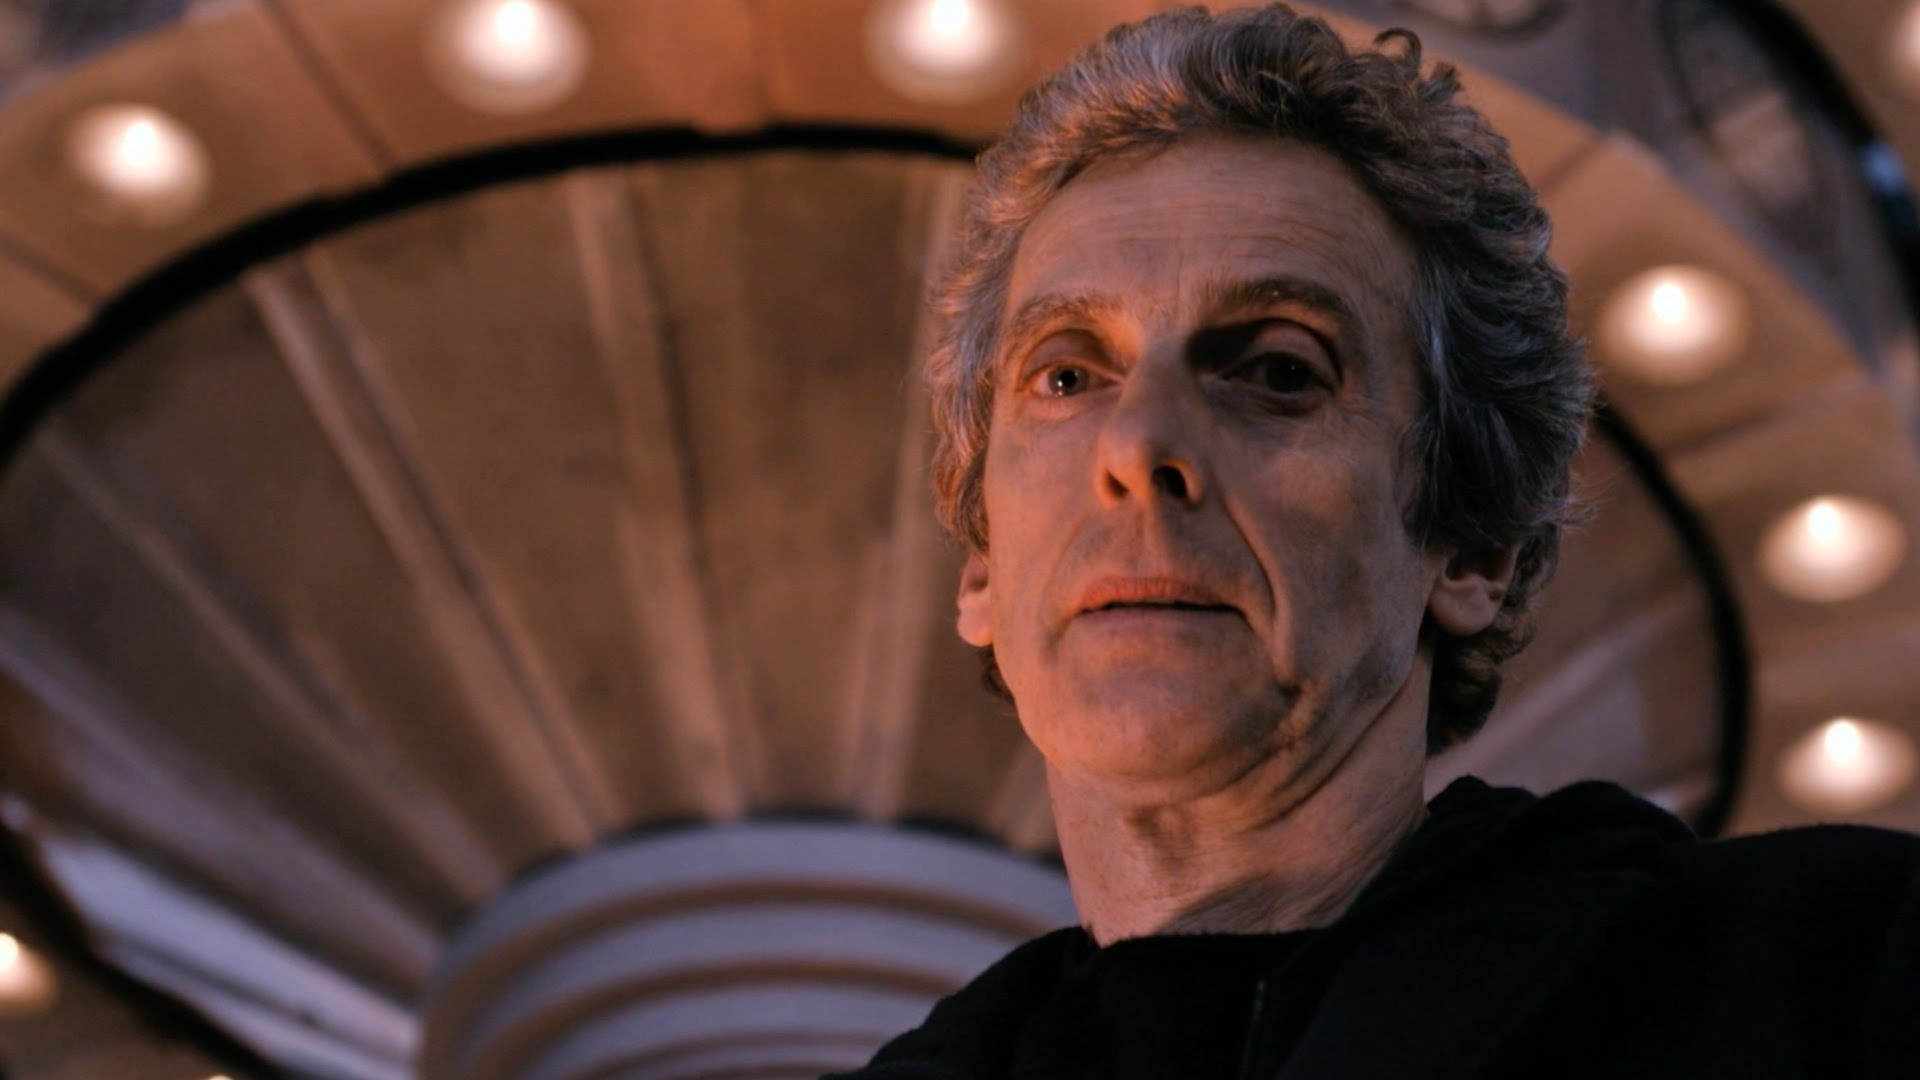 At least 5 more years of Doctor Who – Moffat Confirms!